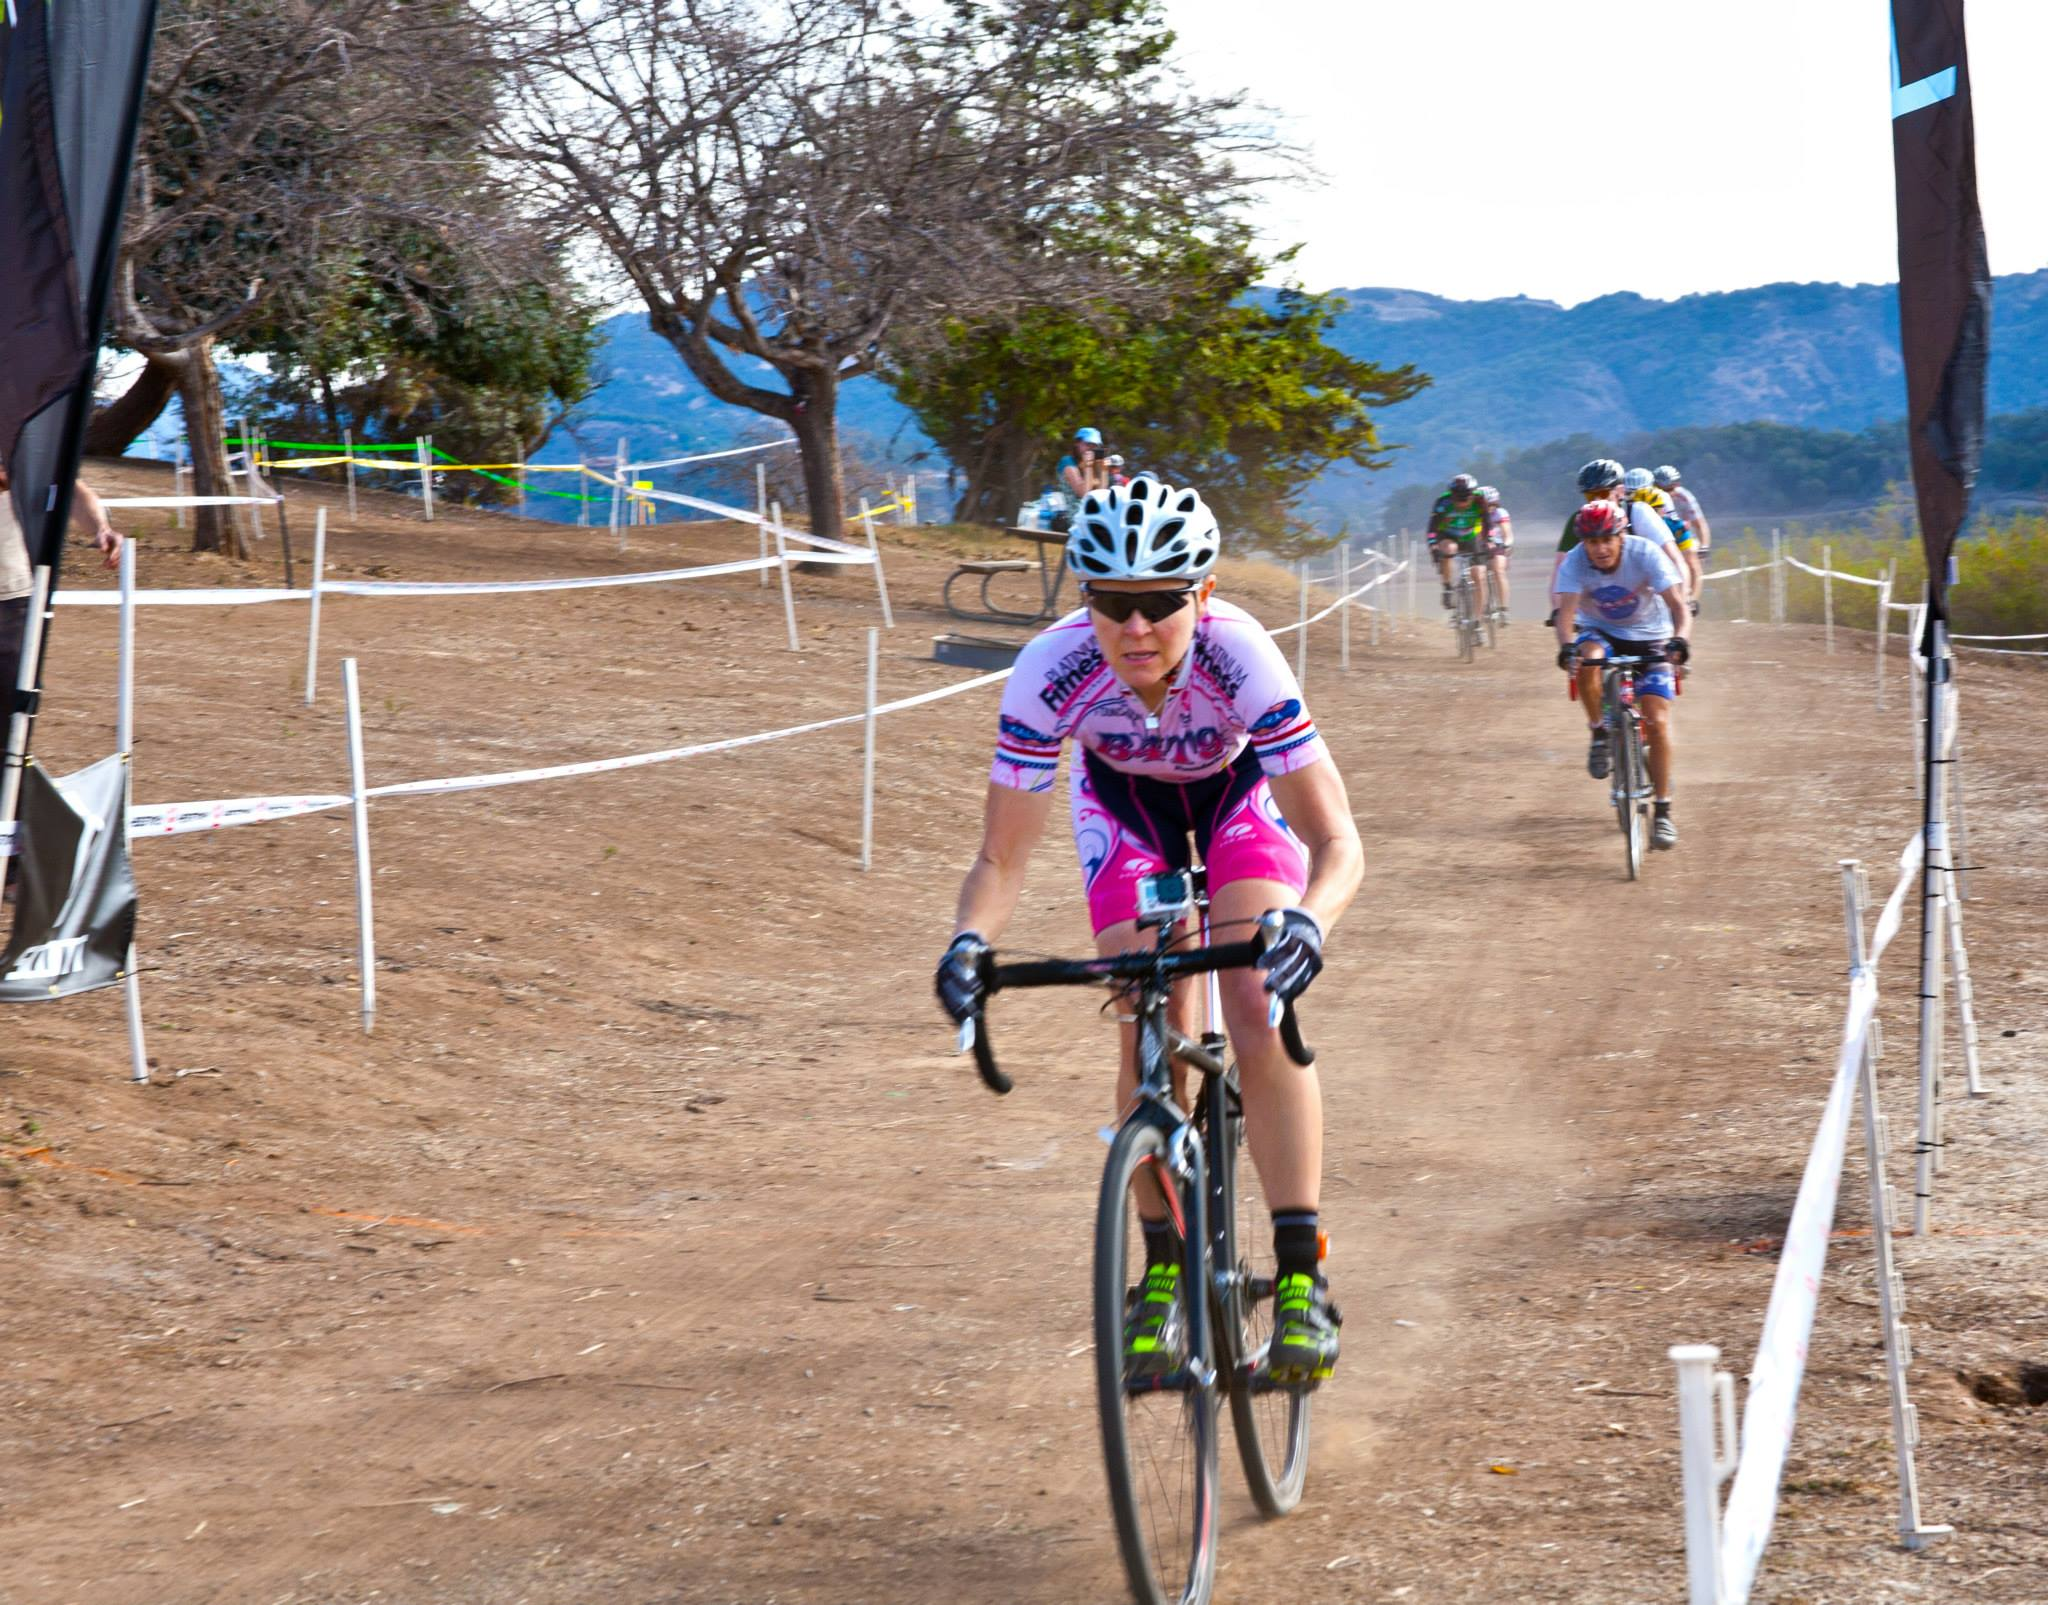 Sonia_Ross_racing_cyclocross_FB.jpg